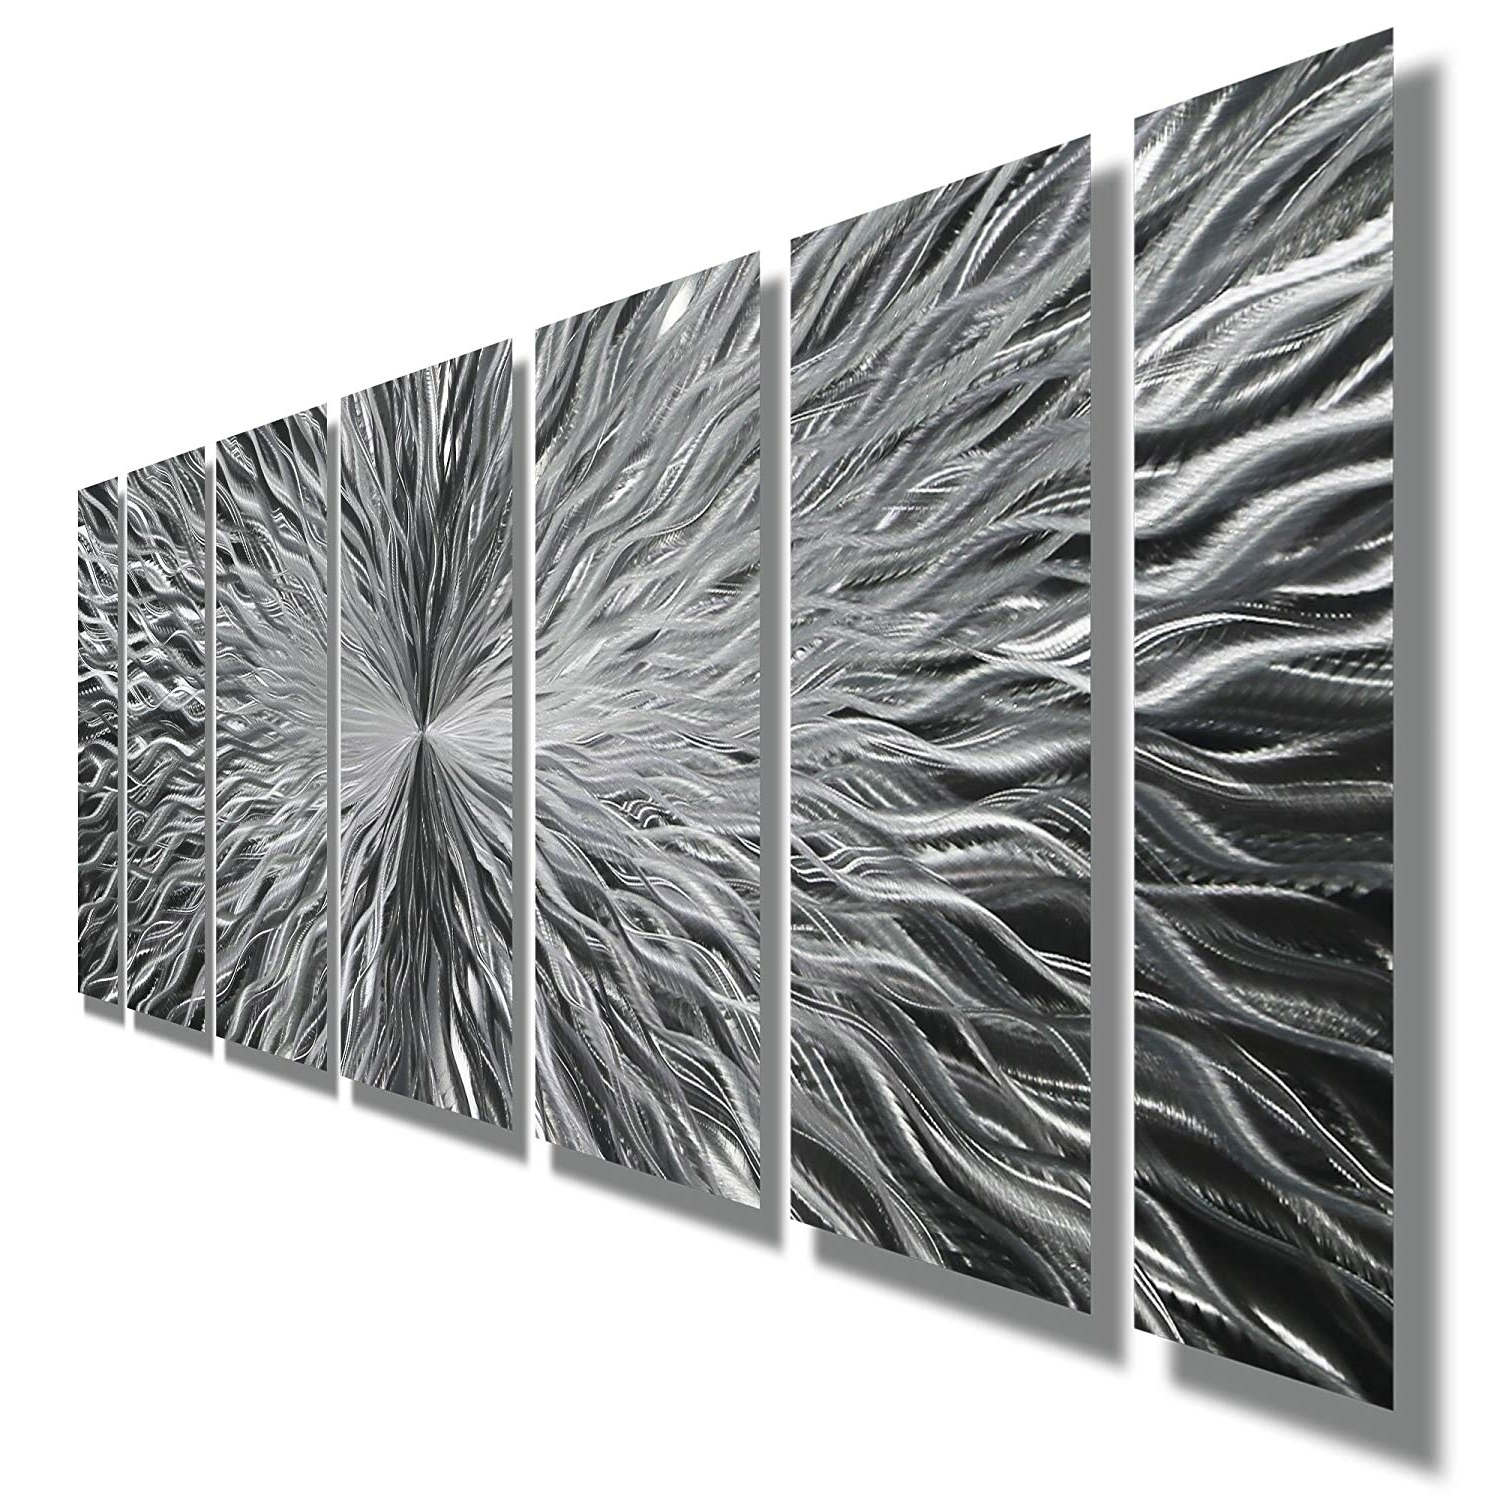 Amazon: Silver Contemporary Metal Wall Art – Abstract Home Decor Inside 2017 Contemporary Metal Wall Art (View 1 of 15)